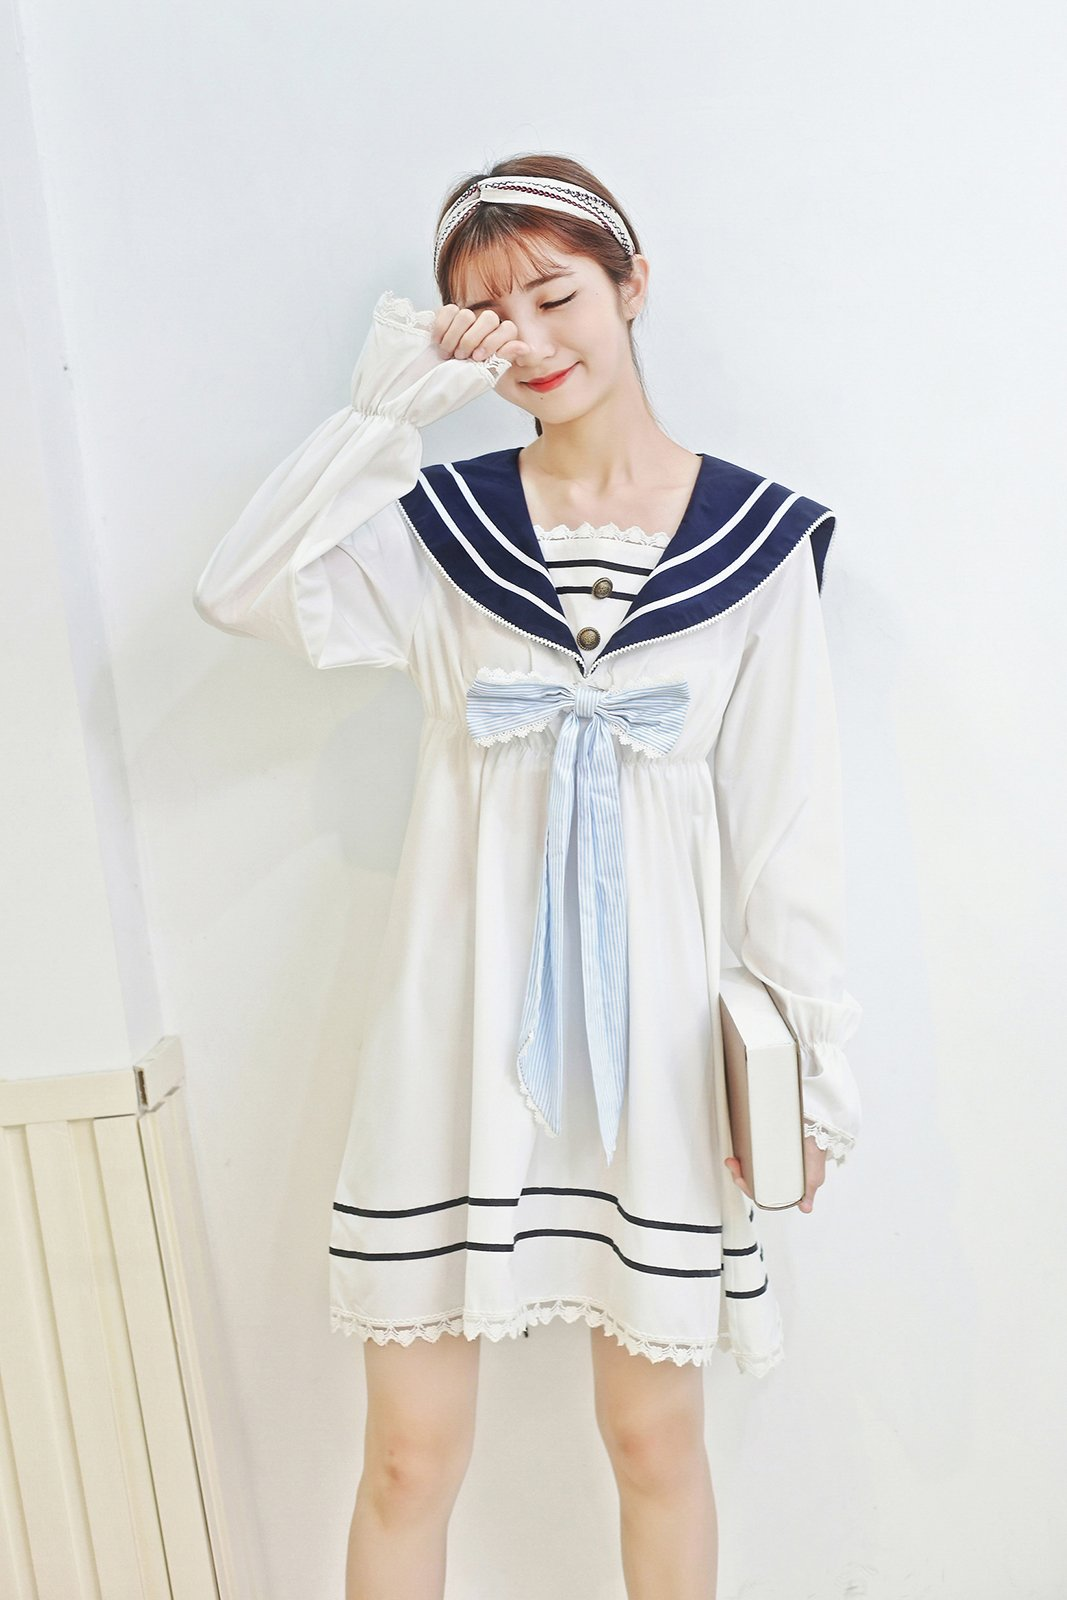 Lemail Girls Sailor School Uniform Chiffon Japanese Long Sleeve Pleated Mini Dress Blue 3XL by Lemail wig (Image #3)